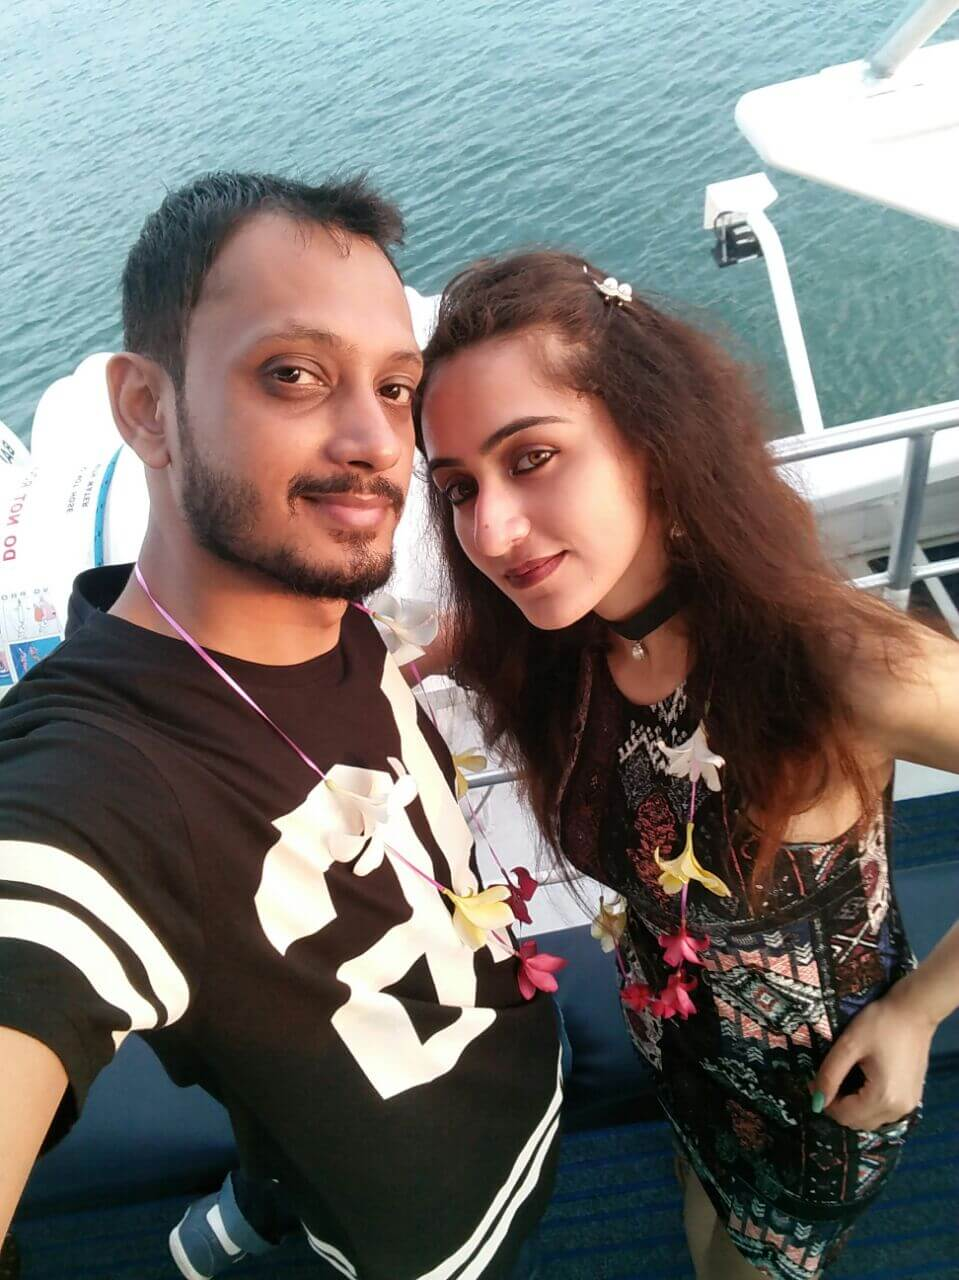 Sanchit and his wife click a selfie on the bali high sunset cruise